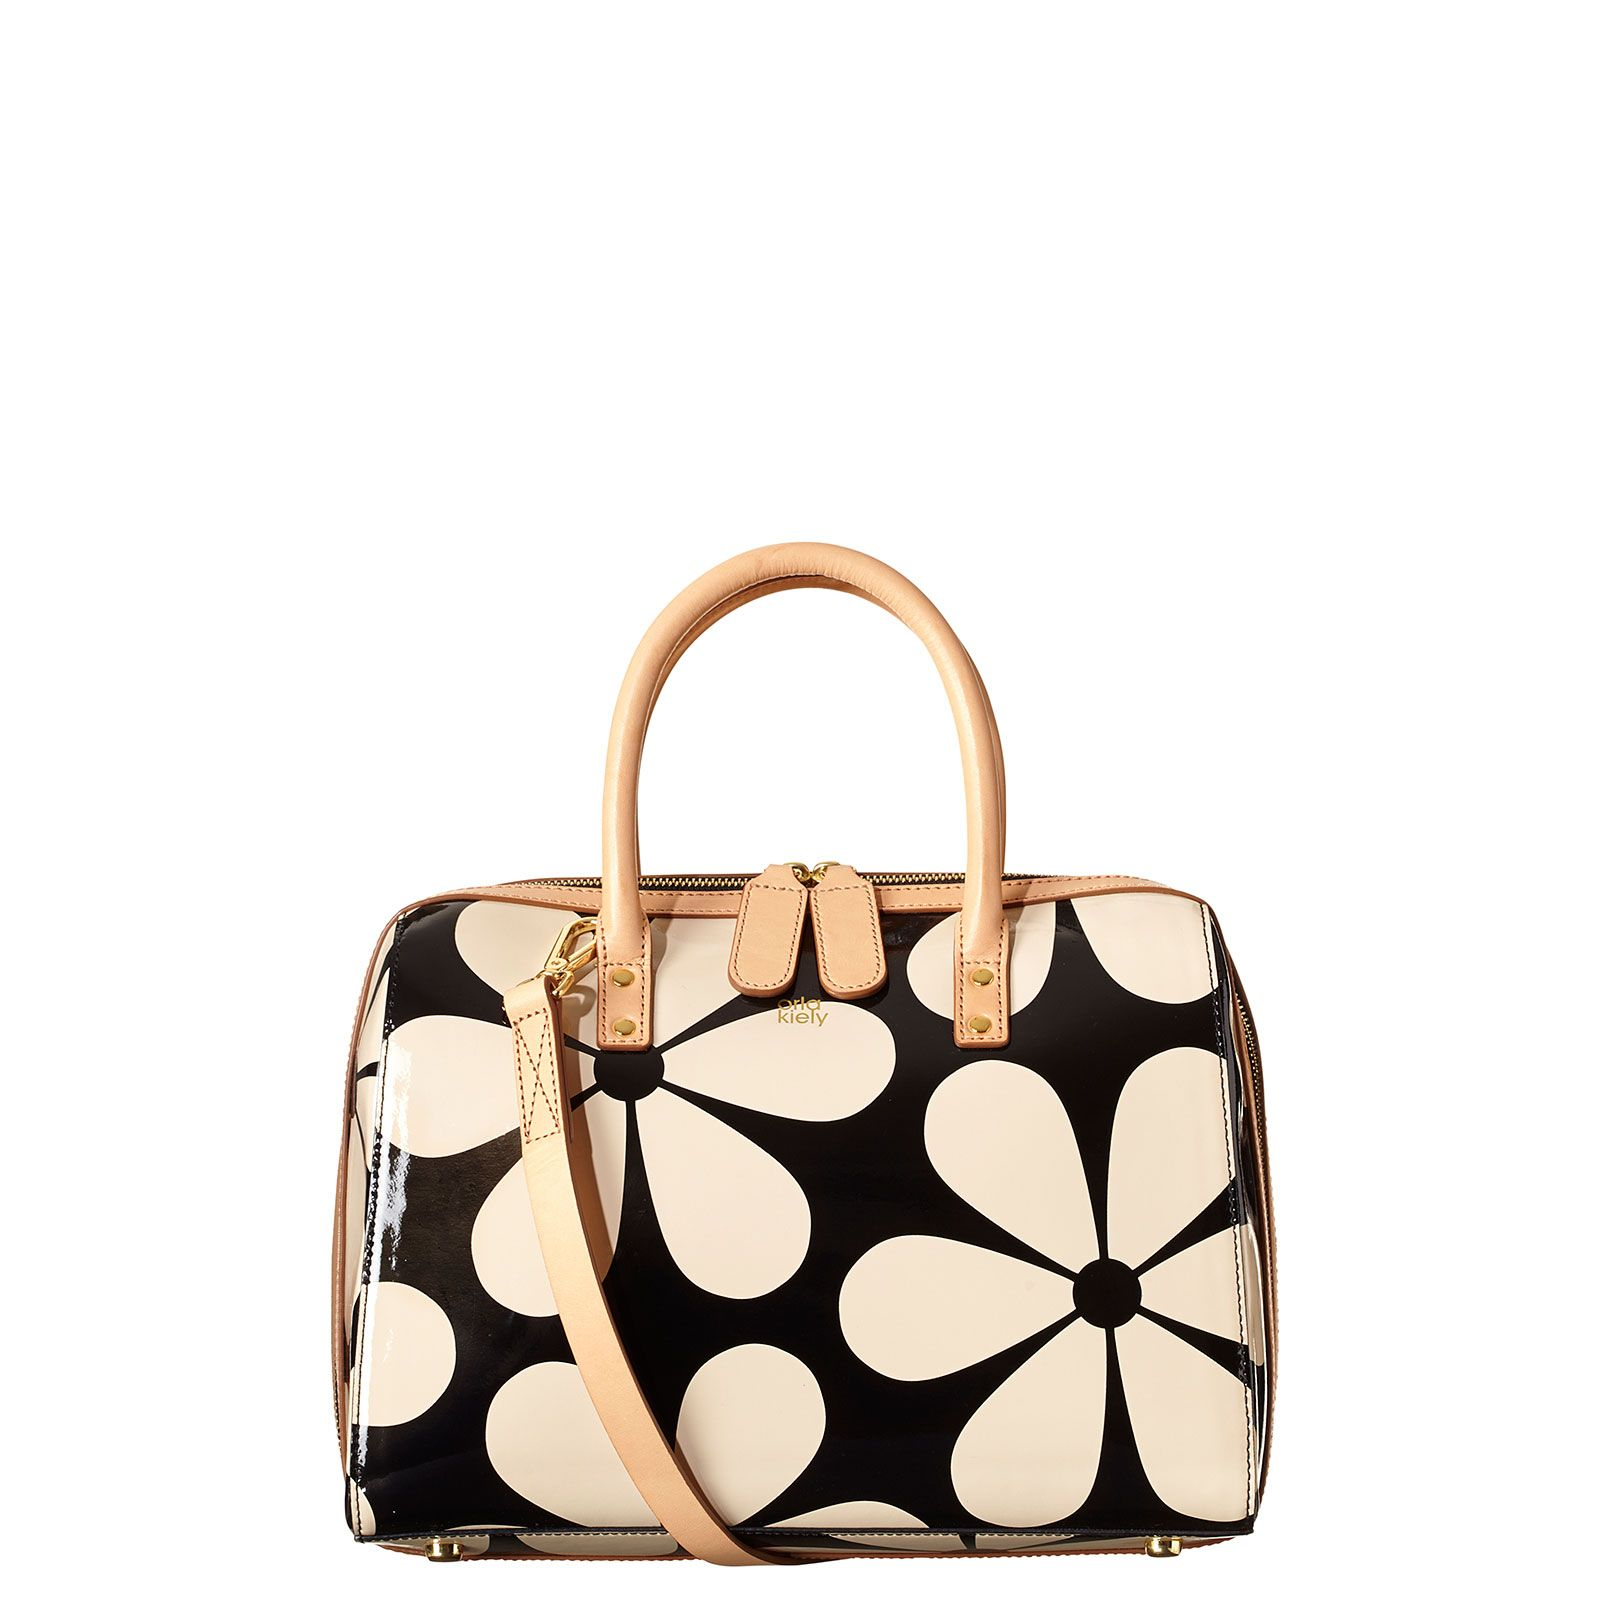 9c10427b674 Orla Kiely: Printed patent leather structured bag. Fully lined with zip  closure and gold colored hardware. Adjustable, detachable long leather  strap so that ...